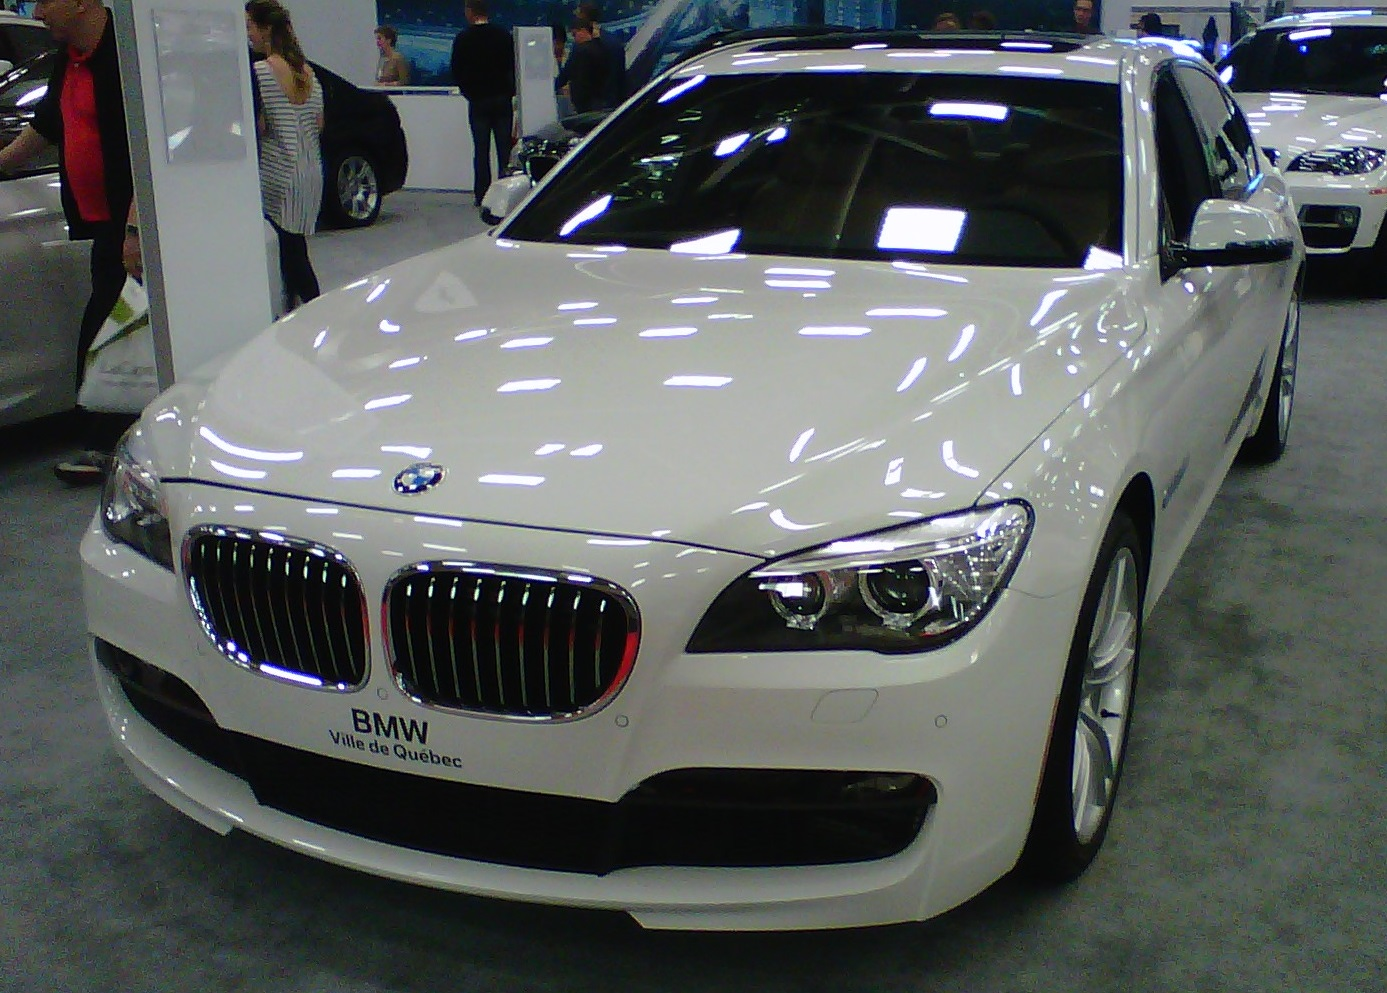 File BMW Series SDLDQ Jpg Wikimedia Commons - 13 bmw